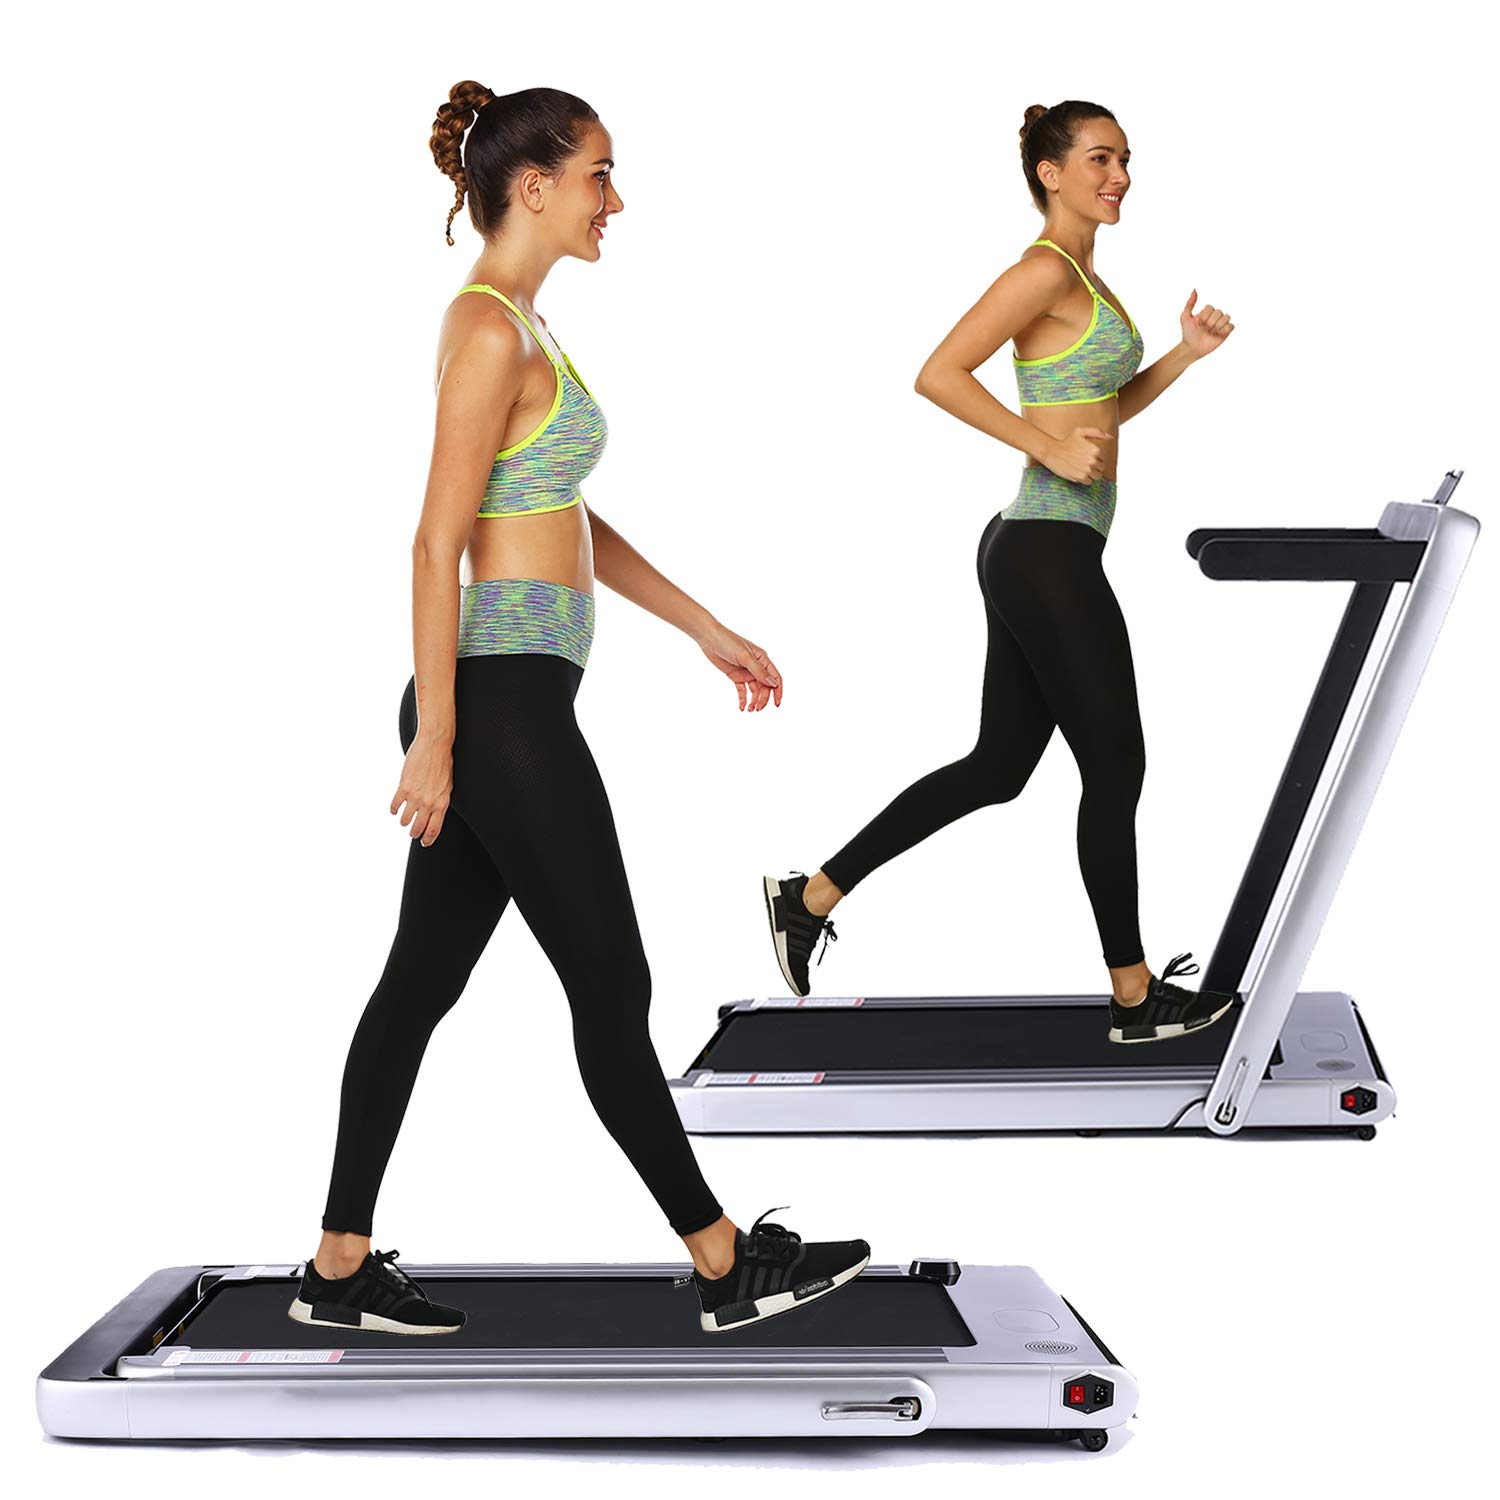 OppsDecor Under Desk Treadmill 2in1 Walking Running Machine Electric Treadmill Folding Pad Treadmill with Remote Control and Bluetooth Speaker for Home & Office Workout Indoor Exercise Machine by OppsDecor